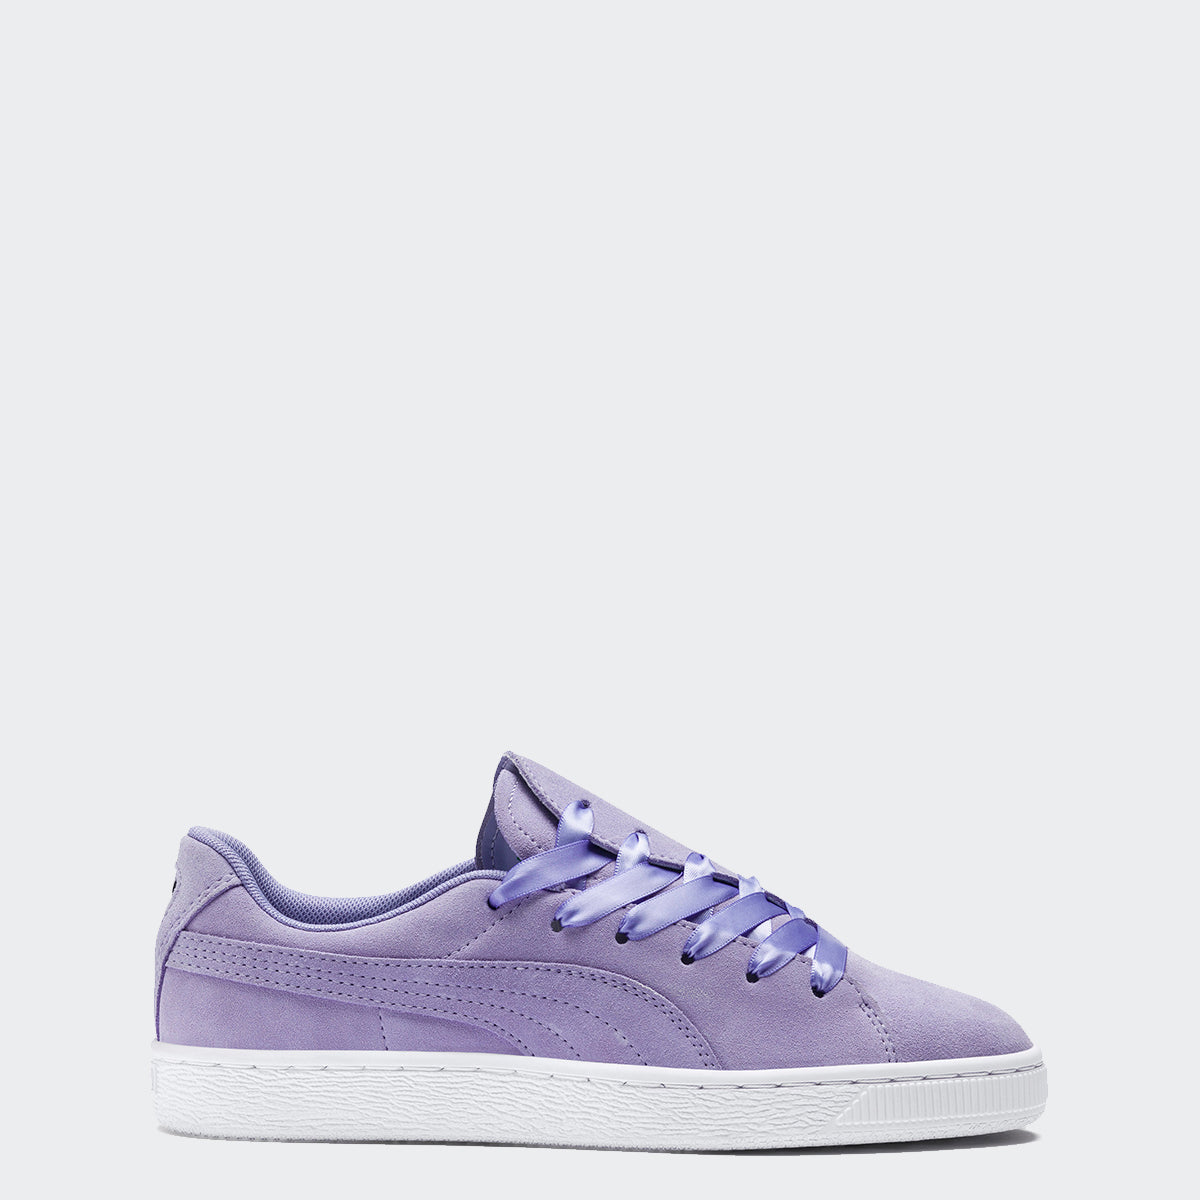 best authentic 58cba e3483 Women's PUMA Suede Crush Sneakers Sweet Lavender - 5.5 / PURPLE